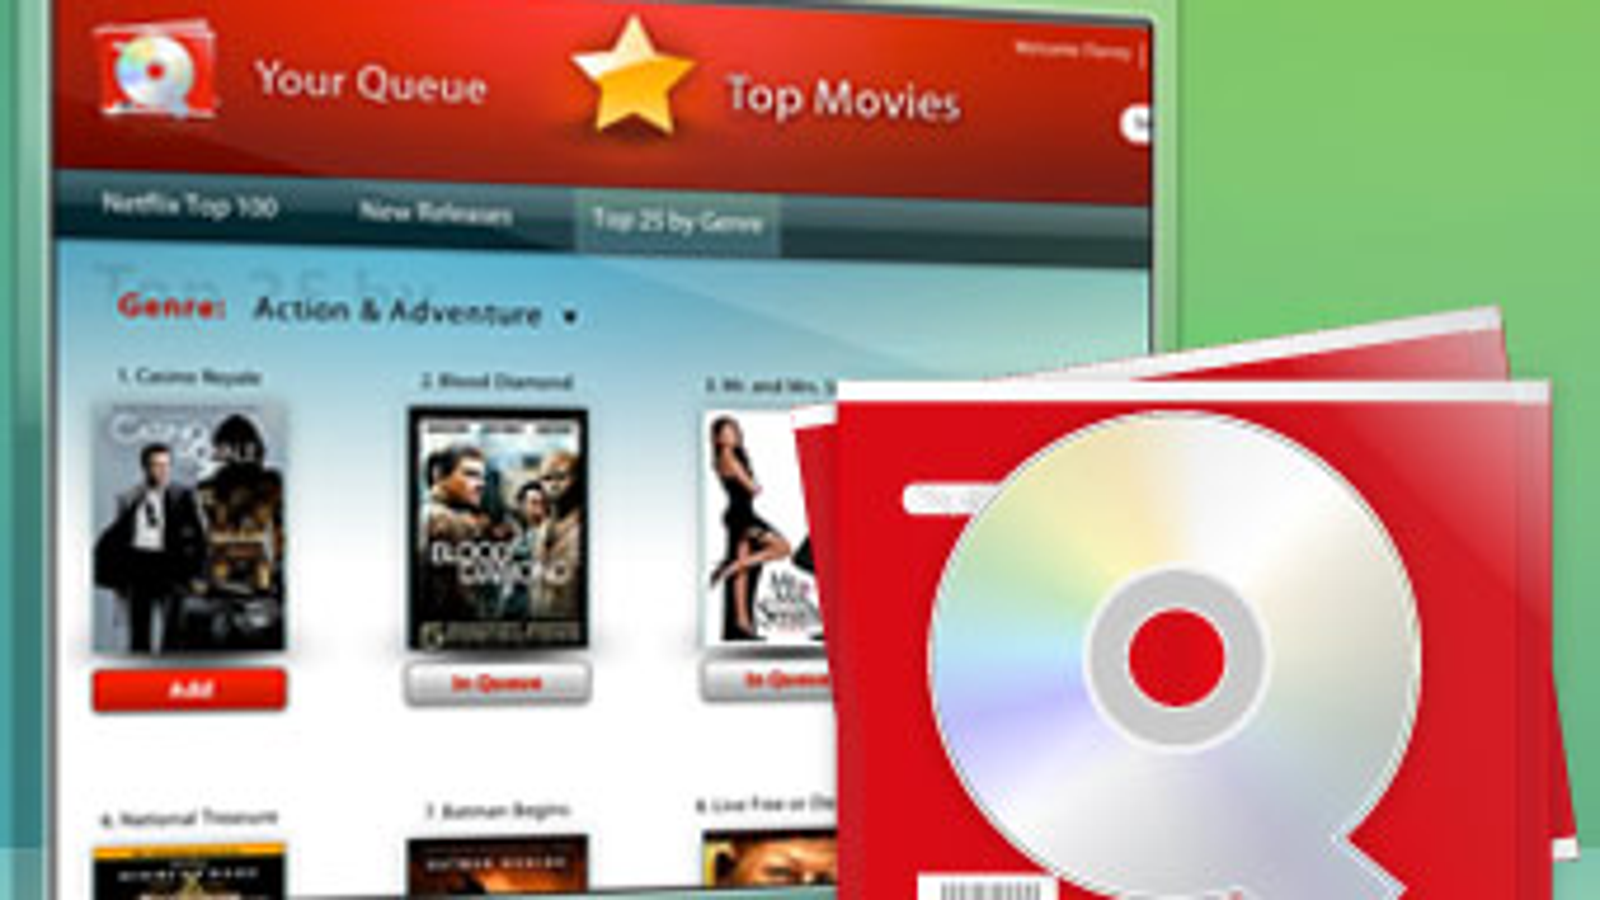 Queued Is a Fantastic Front End to Netflix